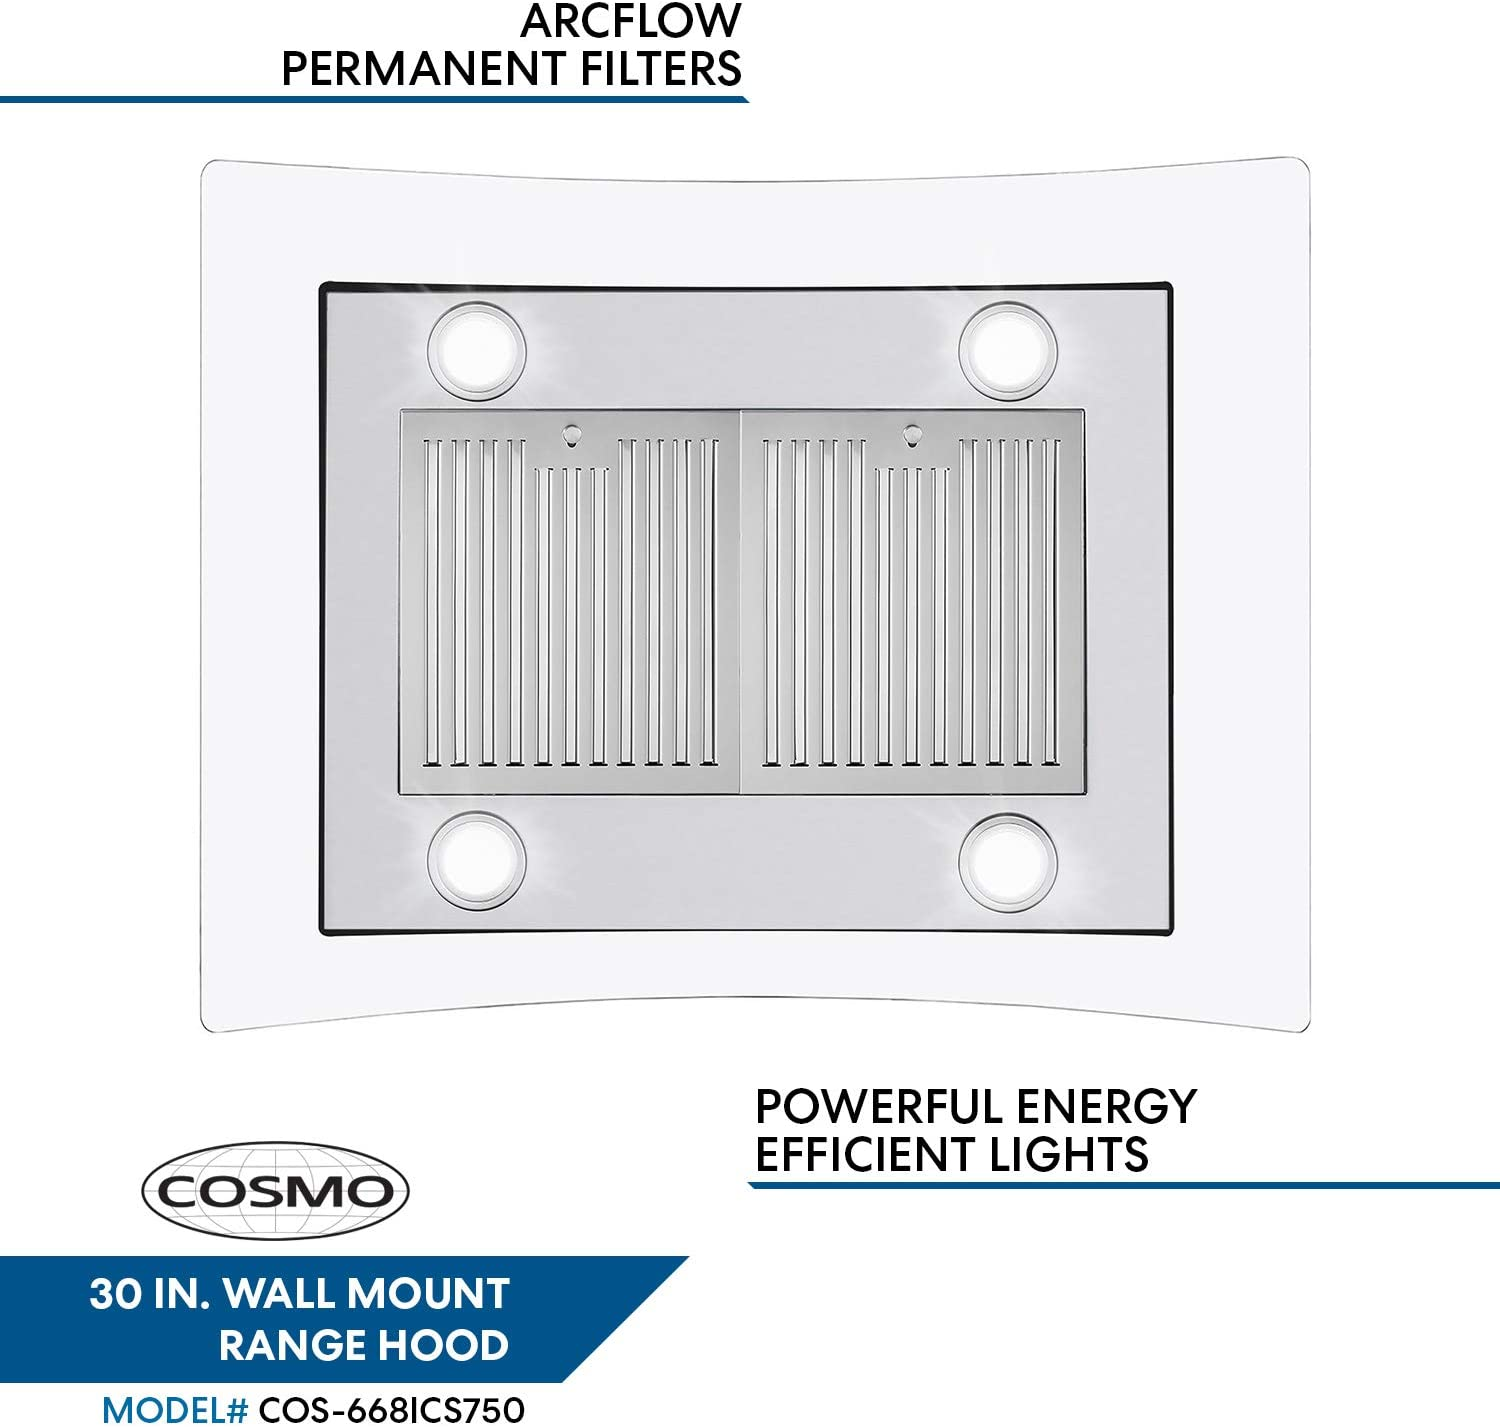 Cosmo 668ICS750 30 in. Island Mount Range Hood with 380 CFM, Soft Touch Controls, Permanent Filters, LED Lights, Tempered Glass Visor in Stainless Steel